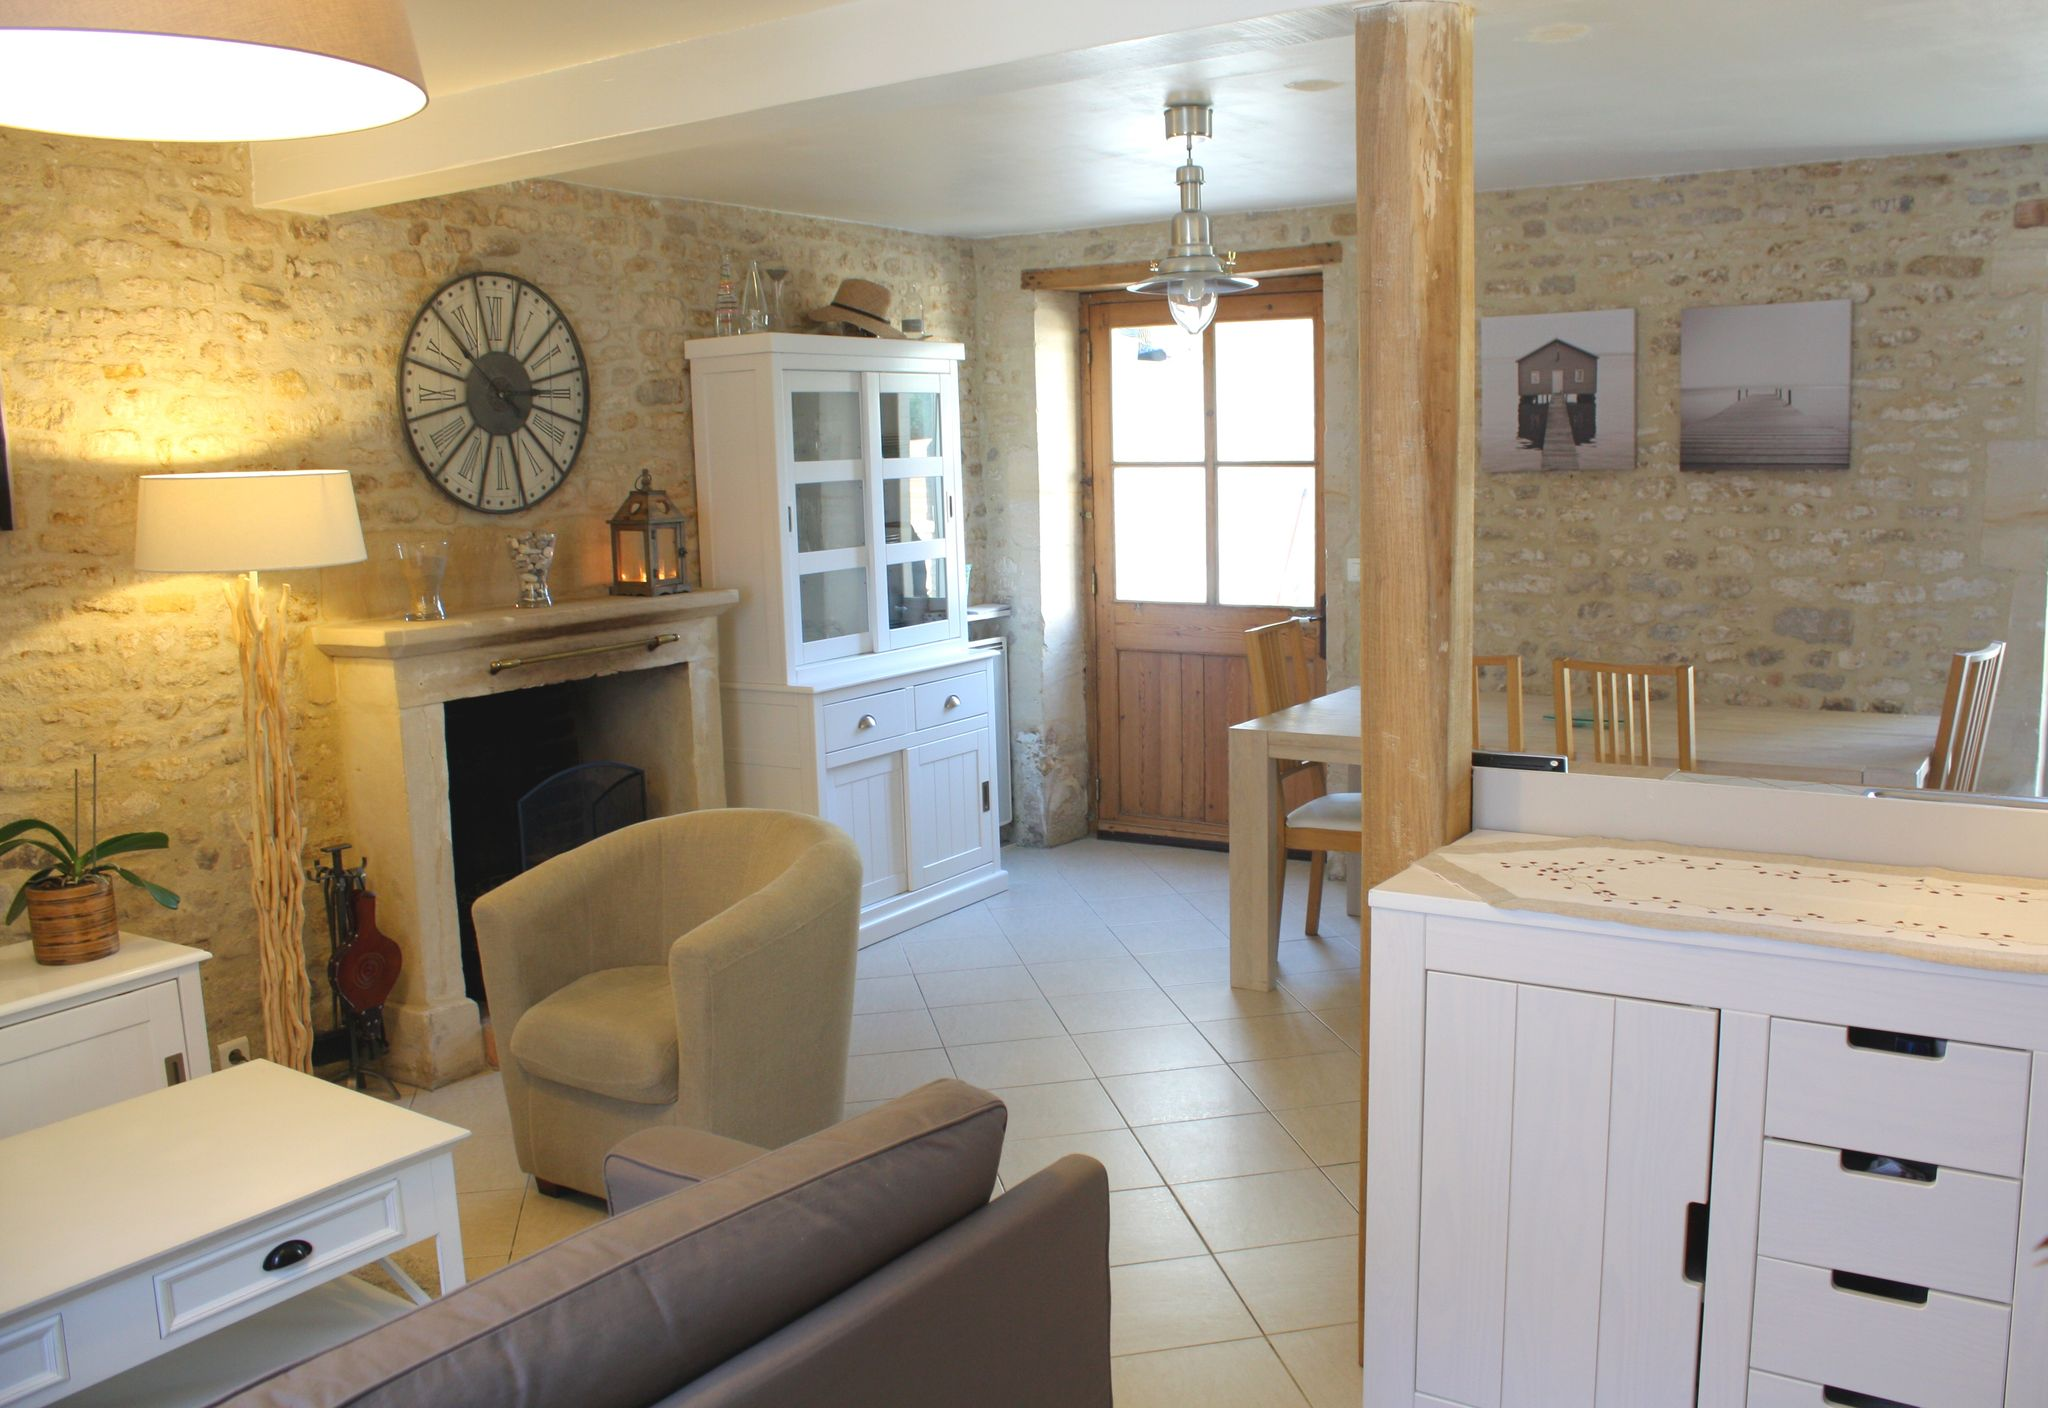 Projet client ambiance cottage en normandie sonia for Decoration maison normande traditionnelle